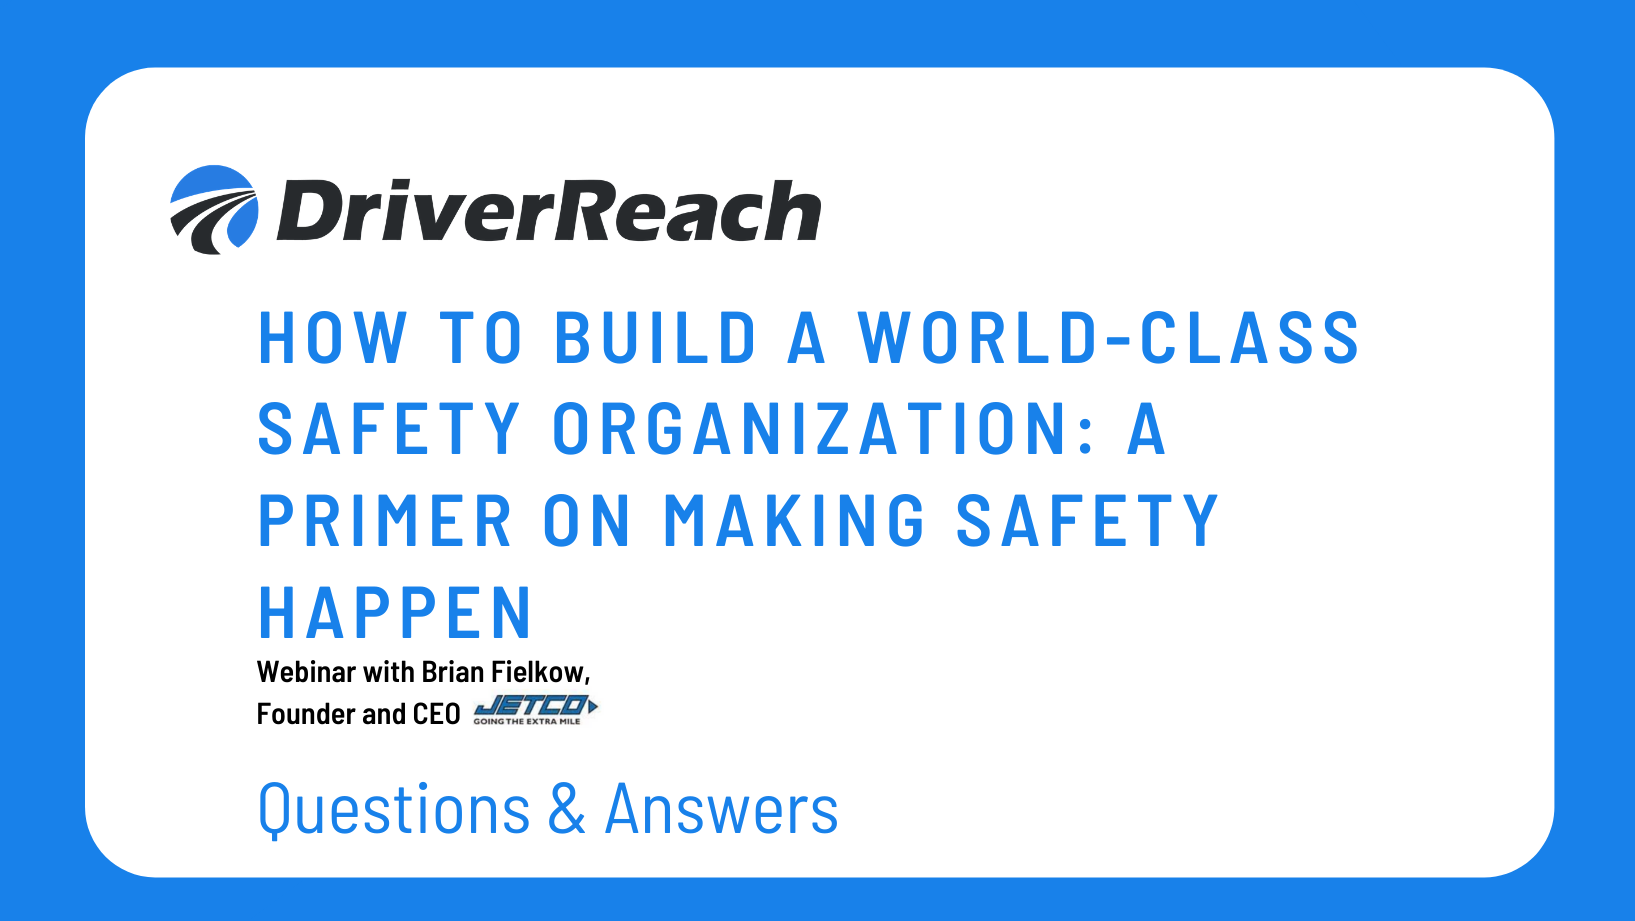 Webinar Q&A: How to Build a World-Class Safety Organization: A Primer on Making Safety Happen